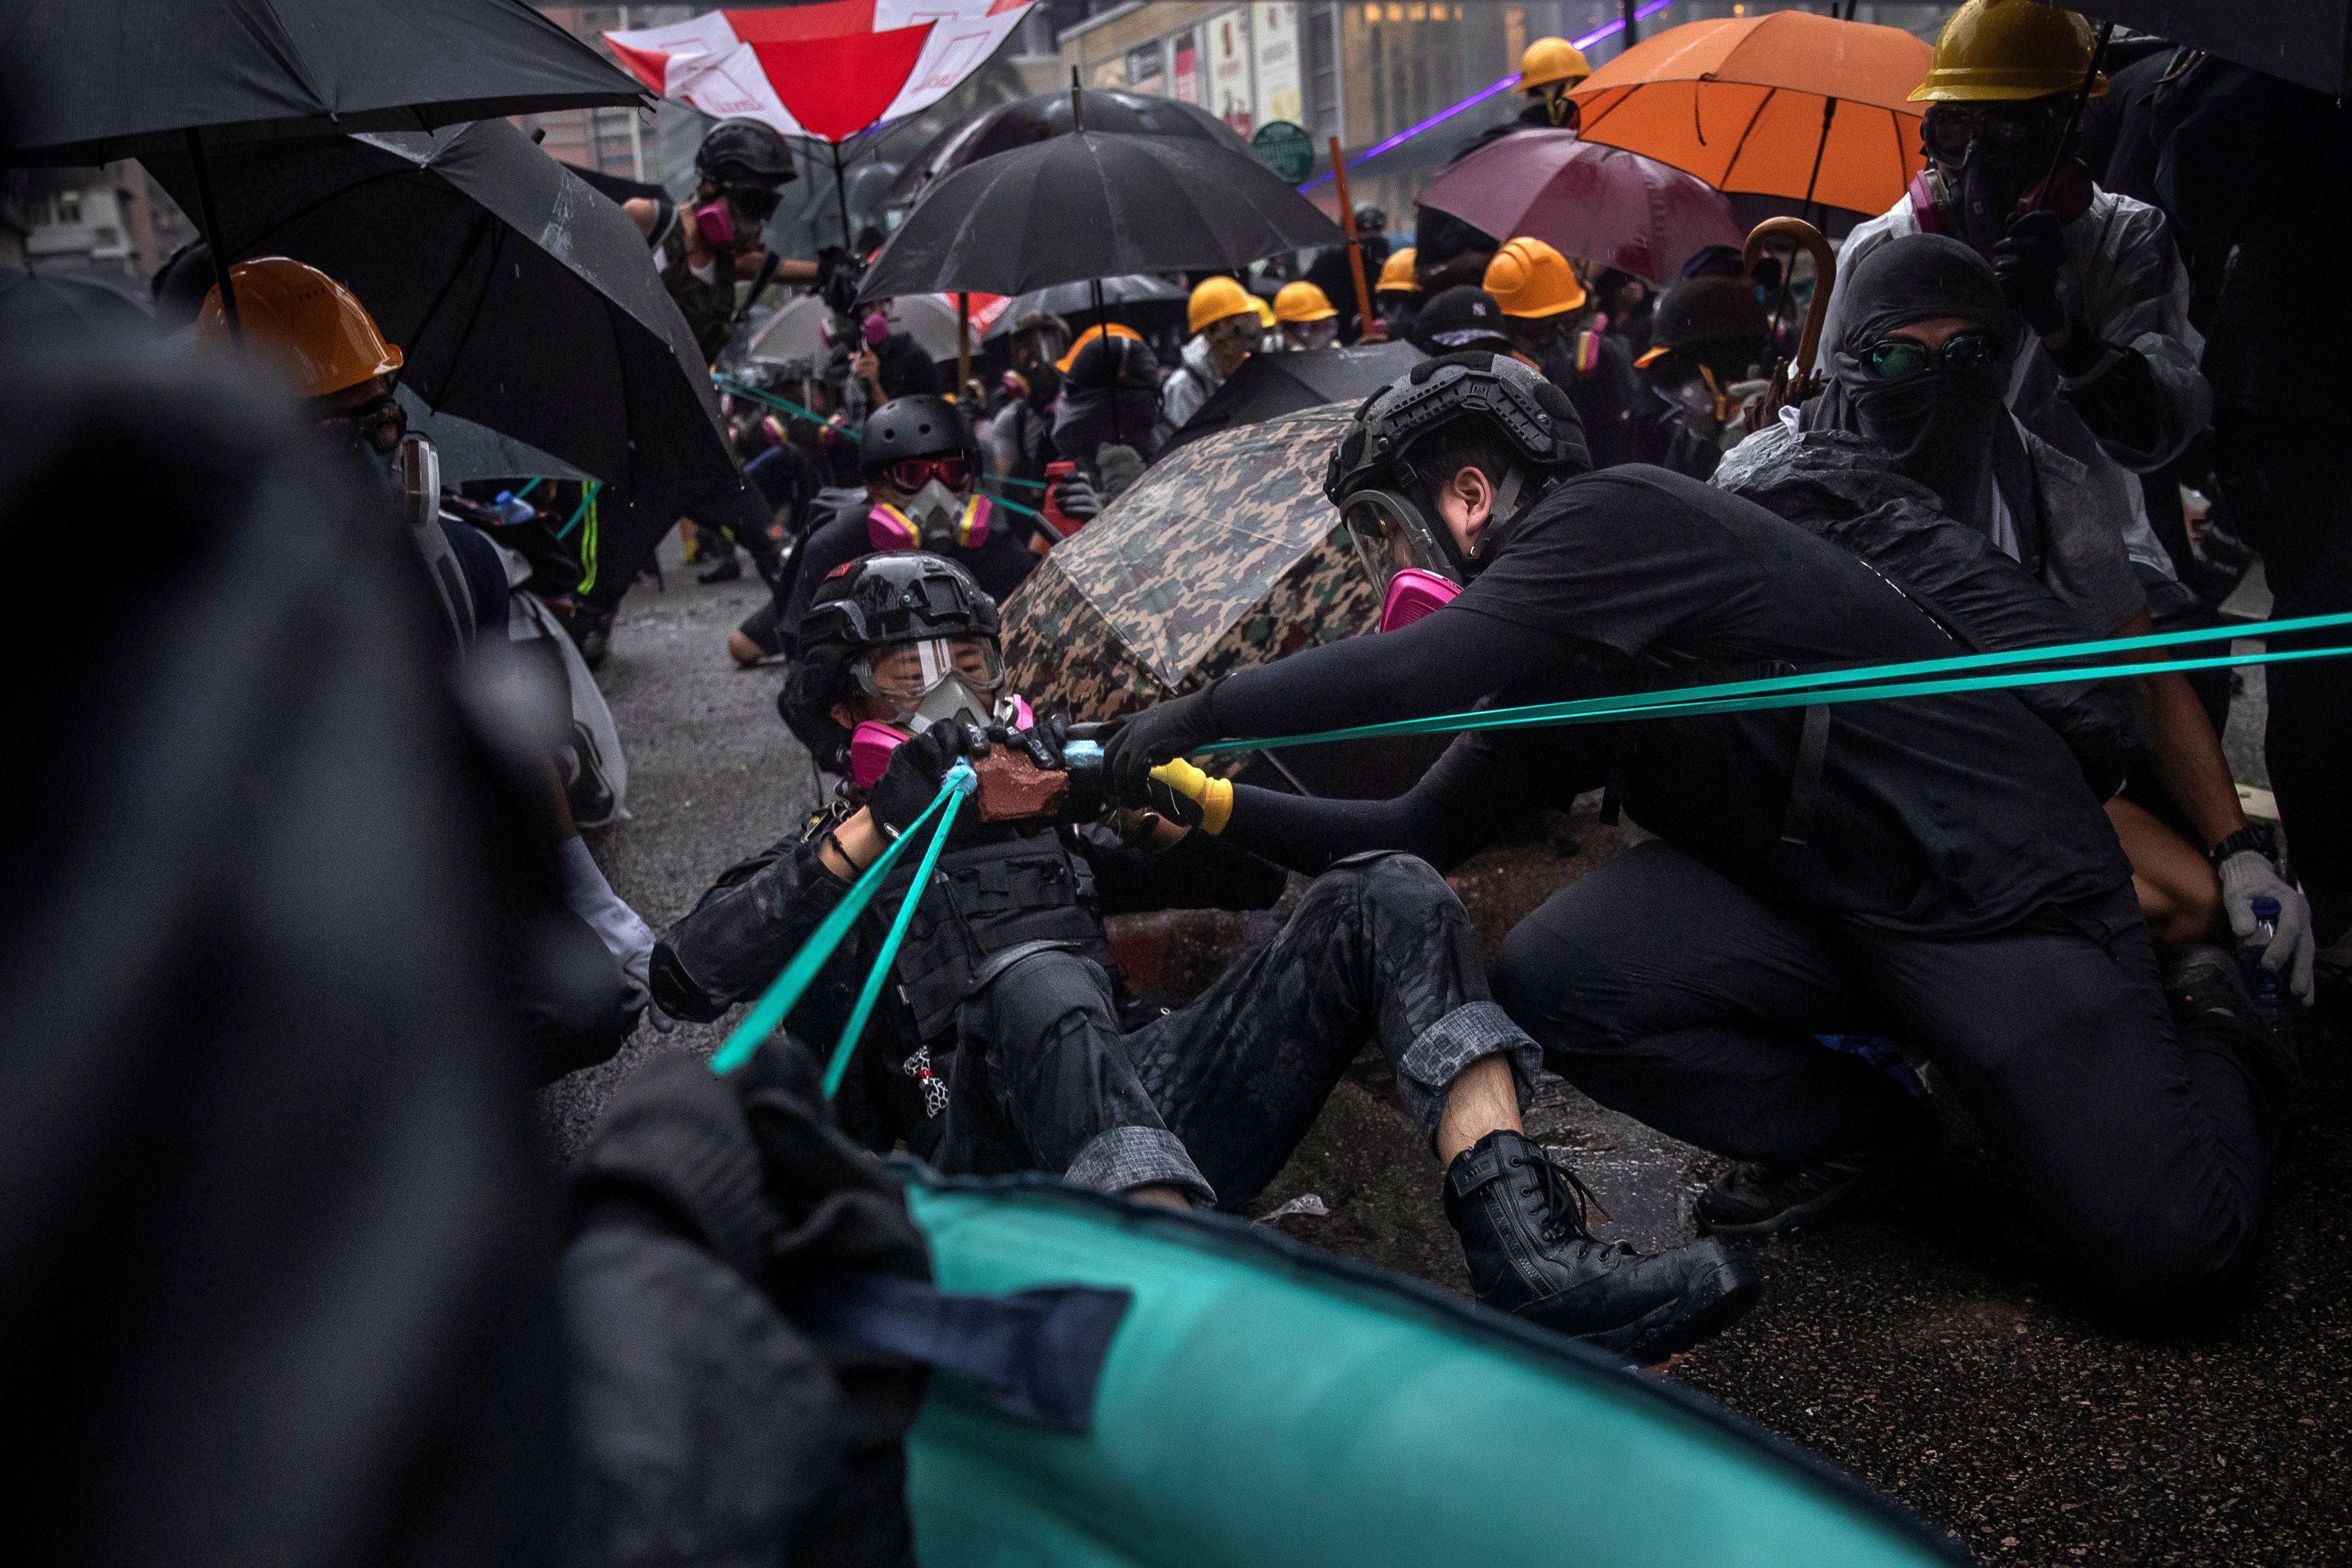 Why extreme actions shouldn't delegitimize a protest